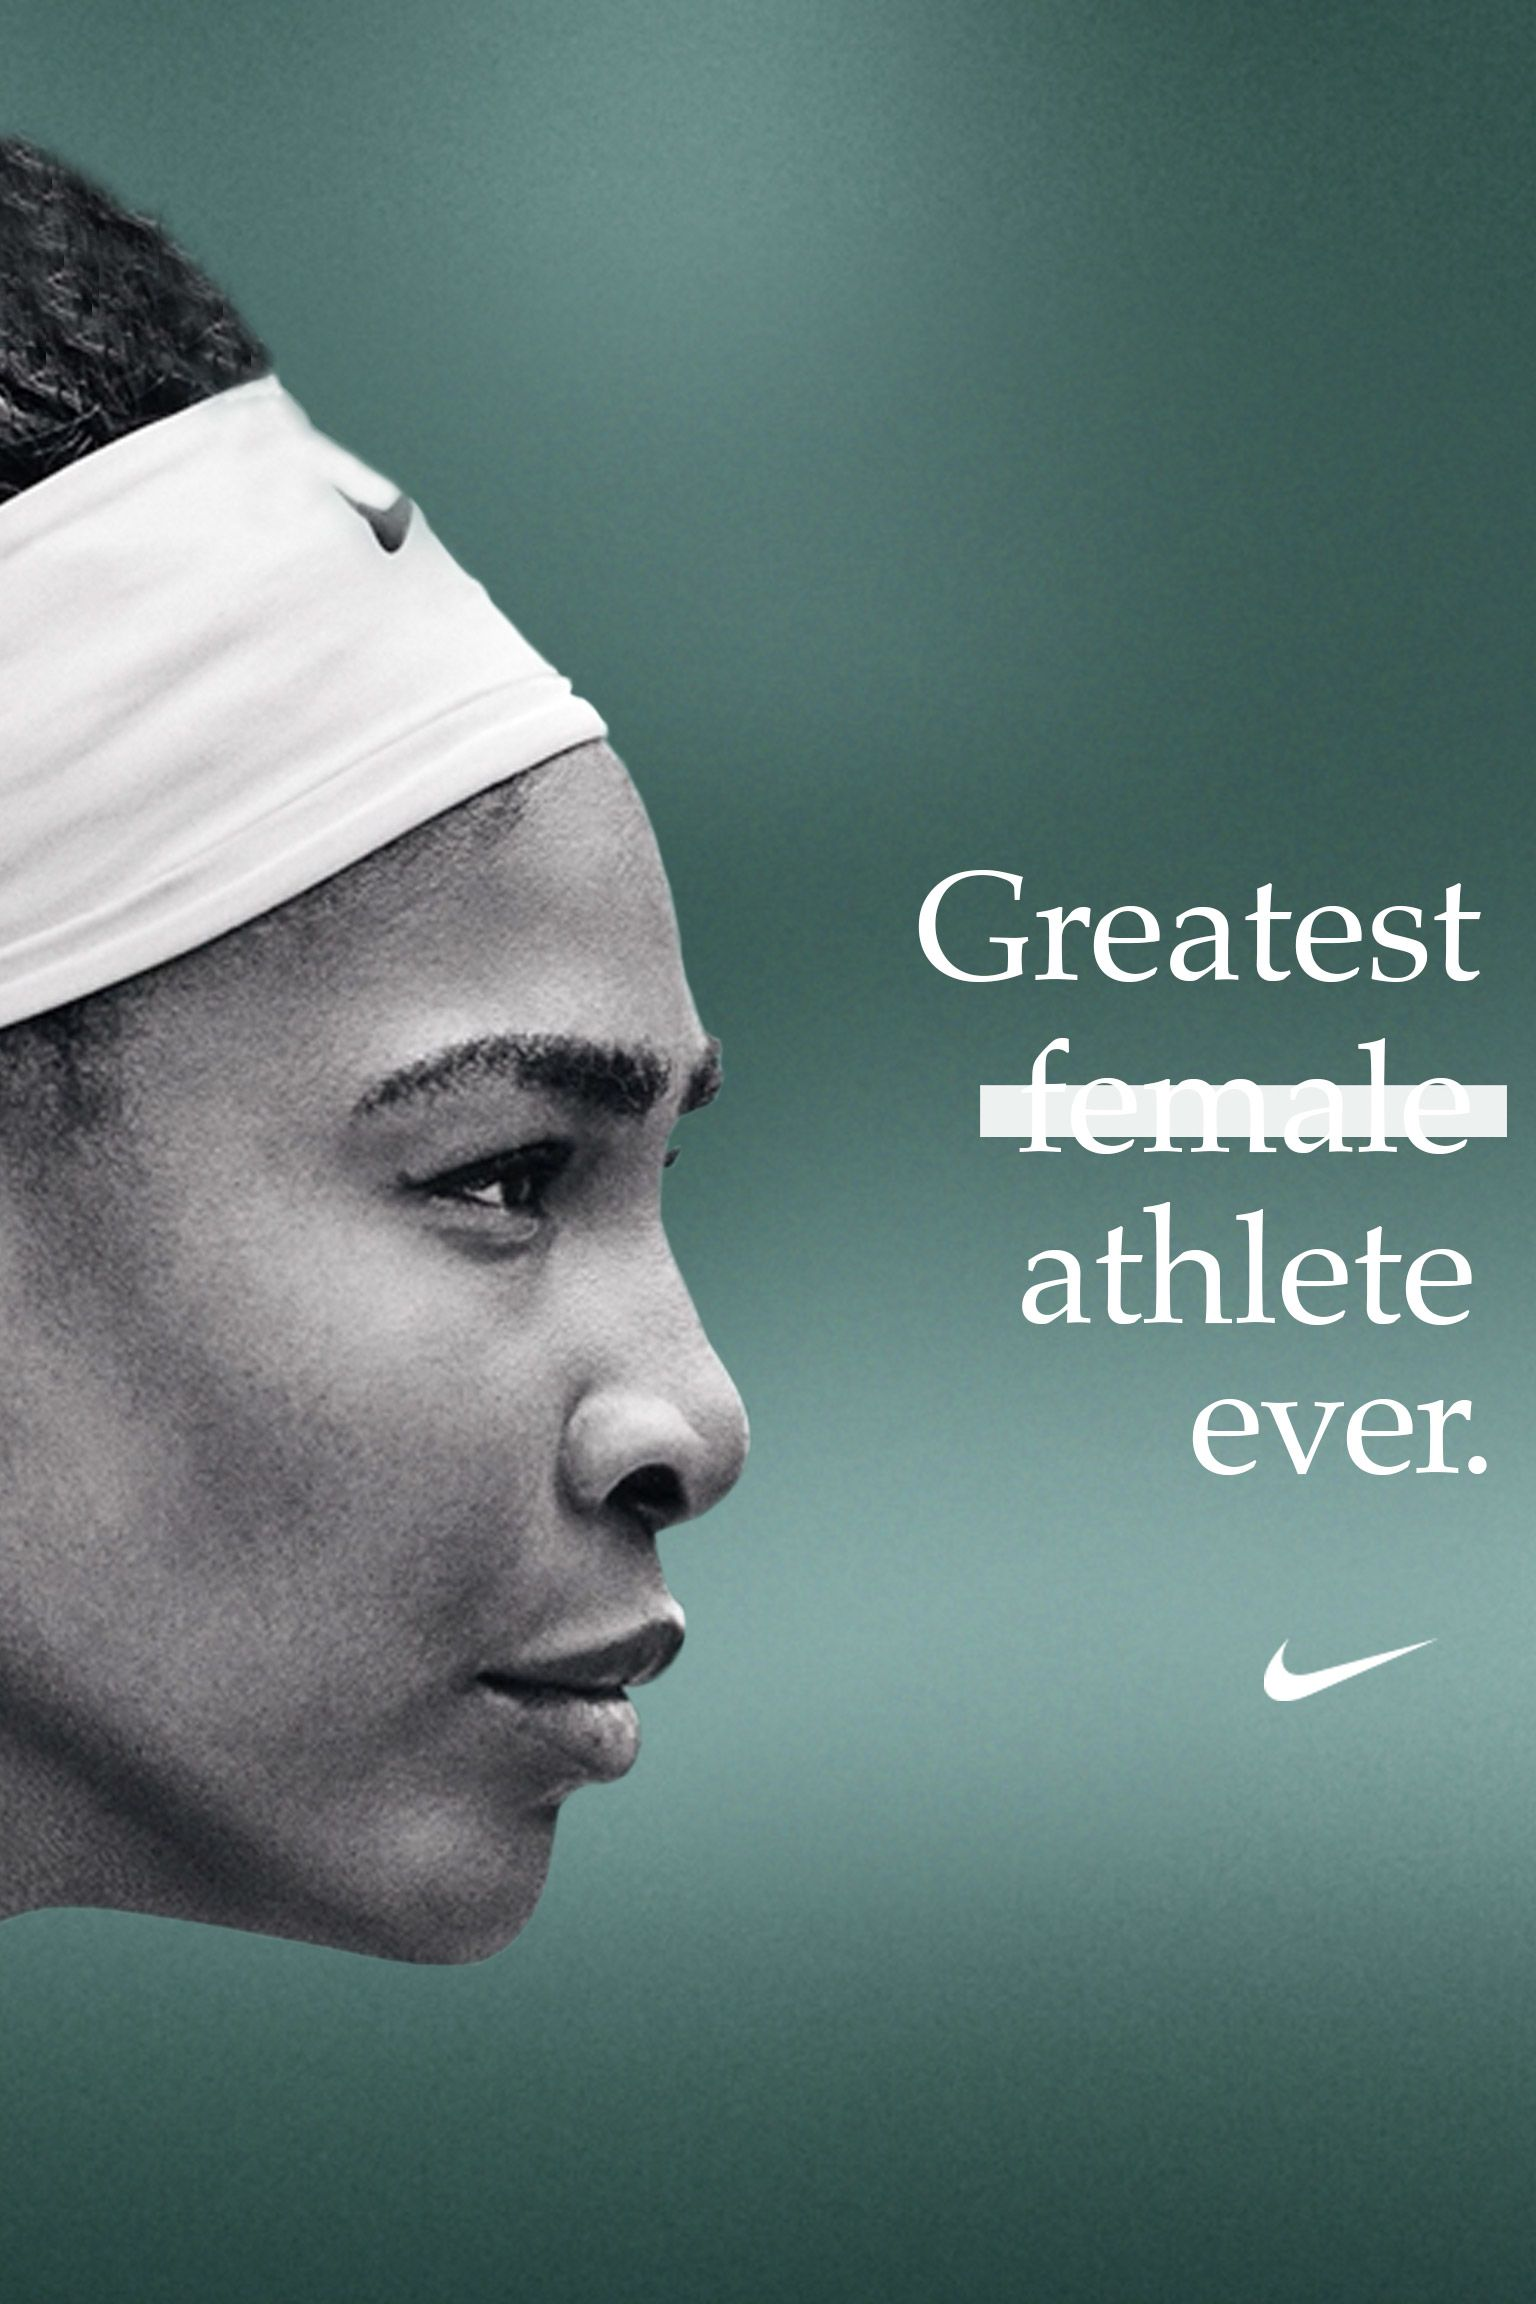 Serena Williams: Unlimited Greatness